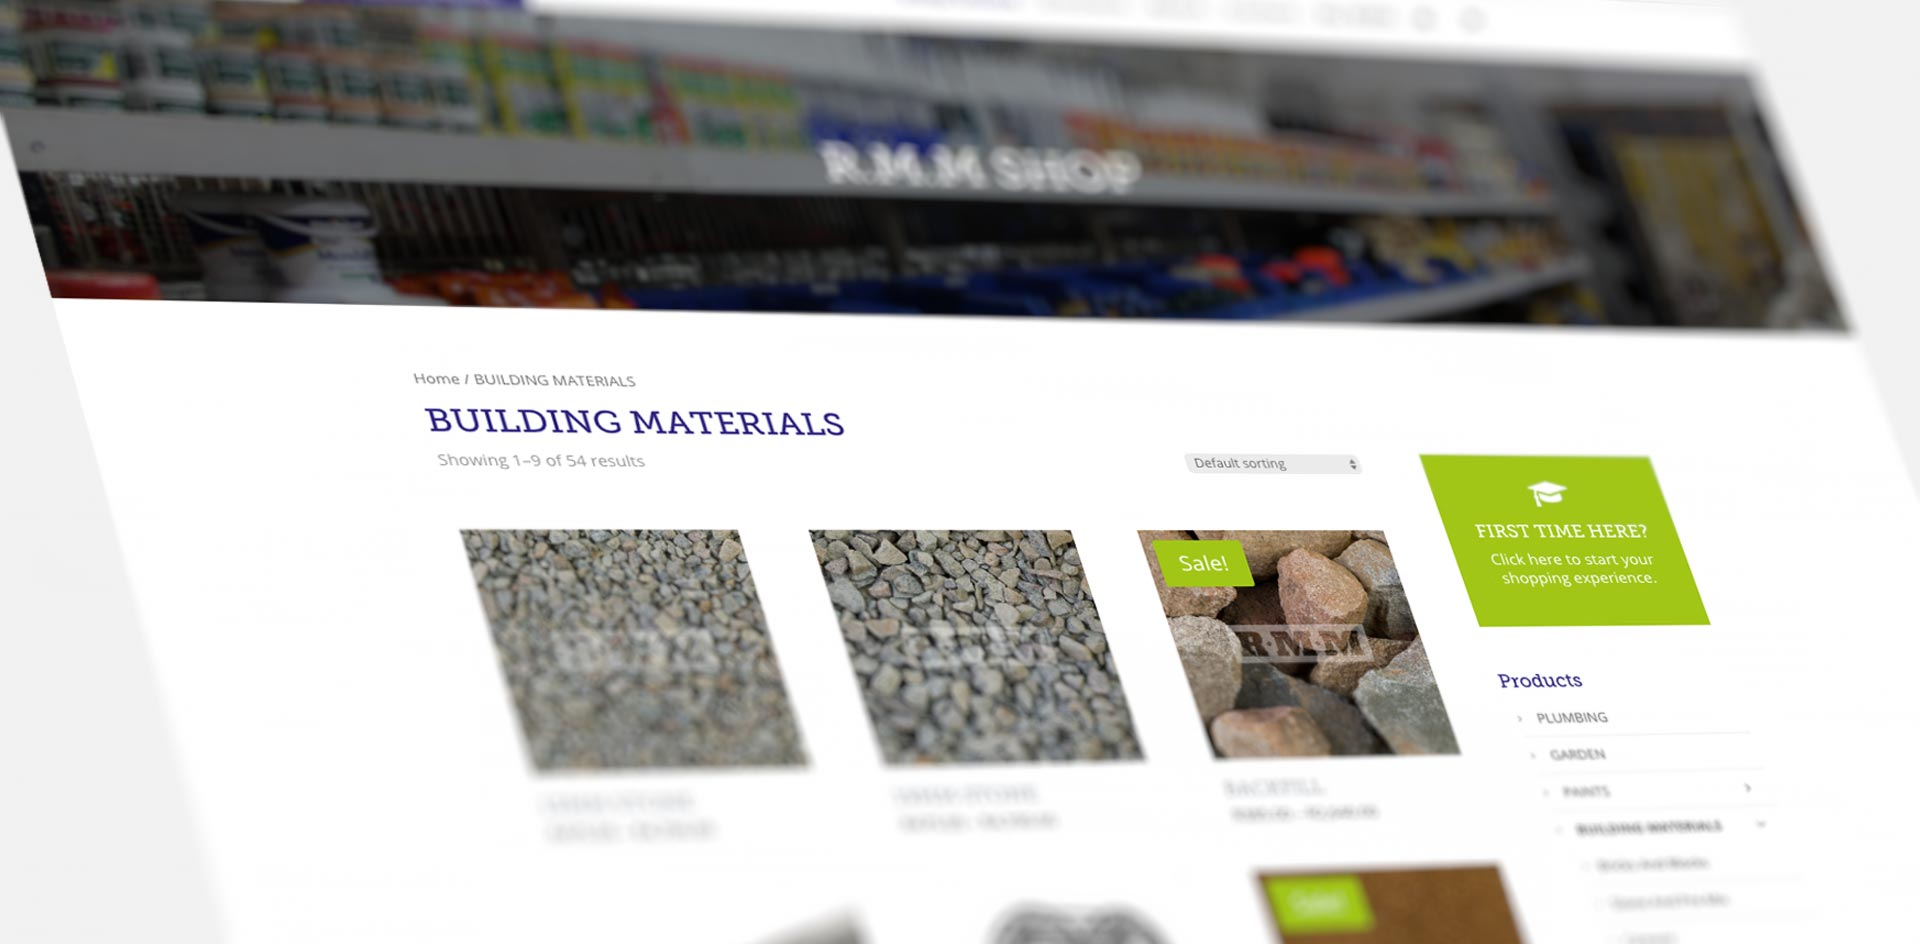 RMM building supplies Web Design & Graphic Design by Black Rooster studios